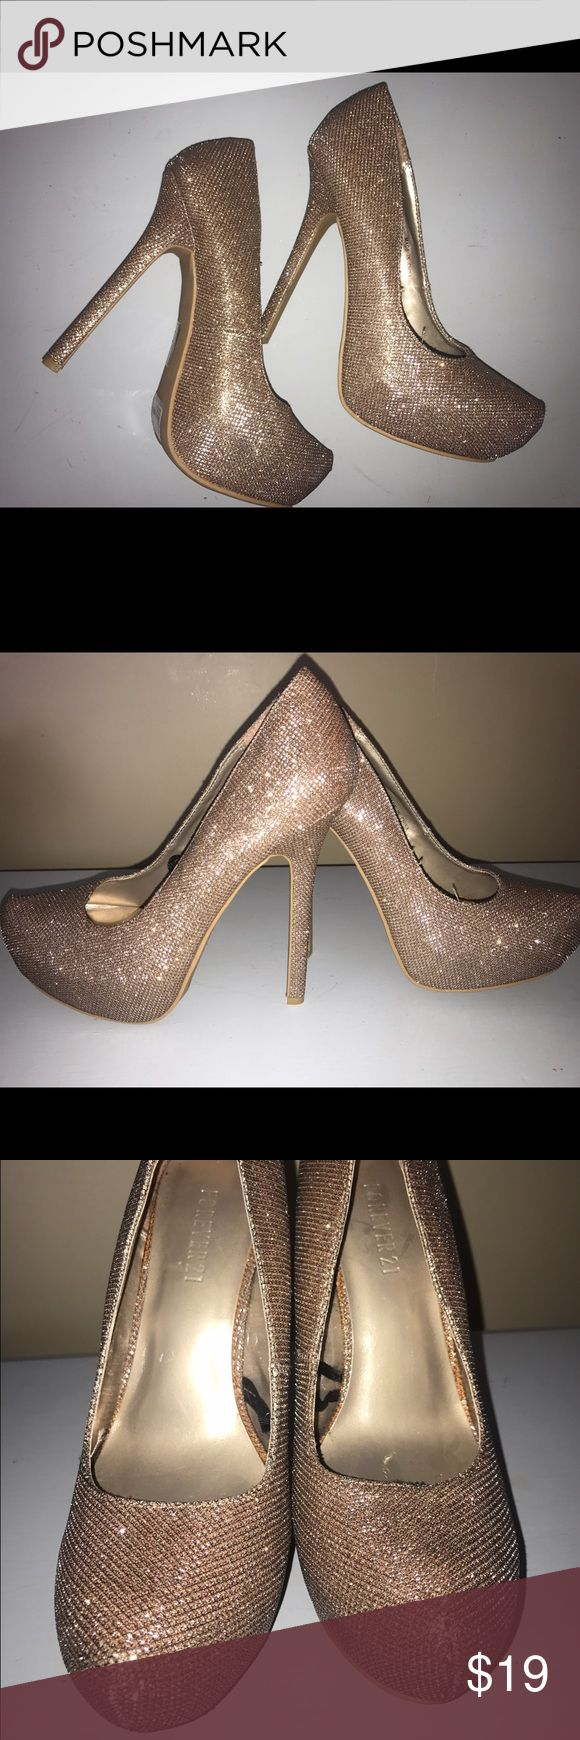 Sparkly champagne colored heels Only worn once! Such cute tall heels Shoes Heels